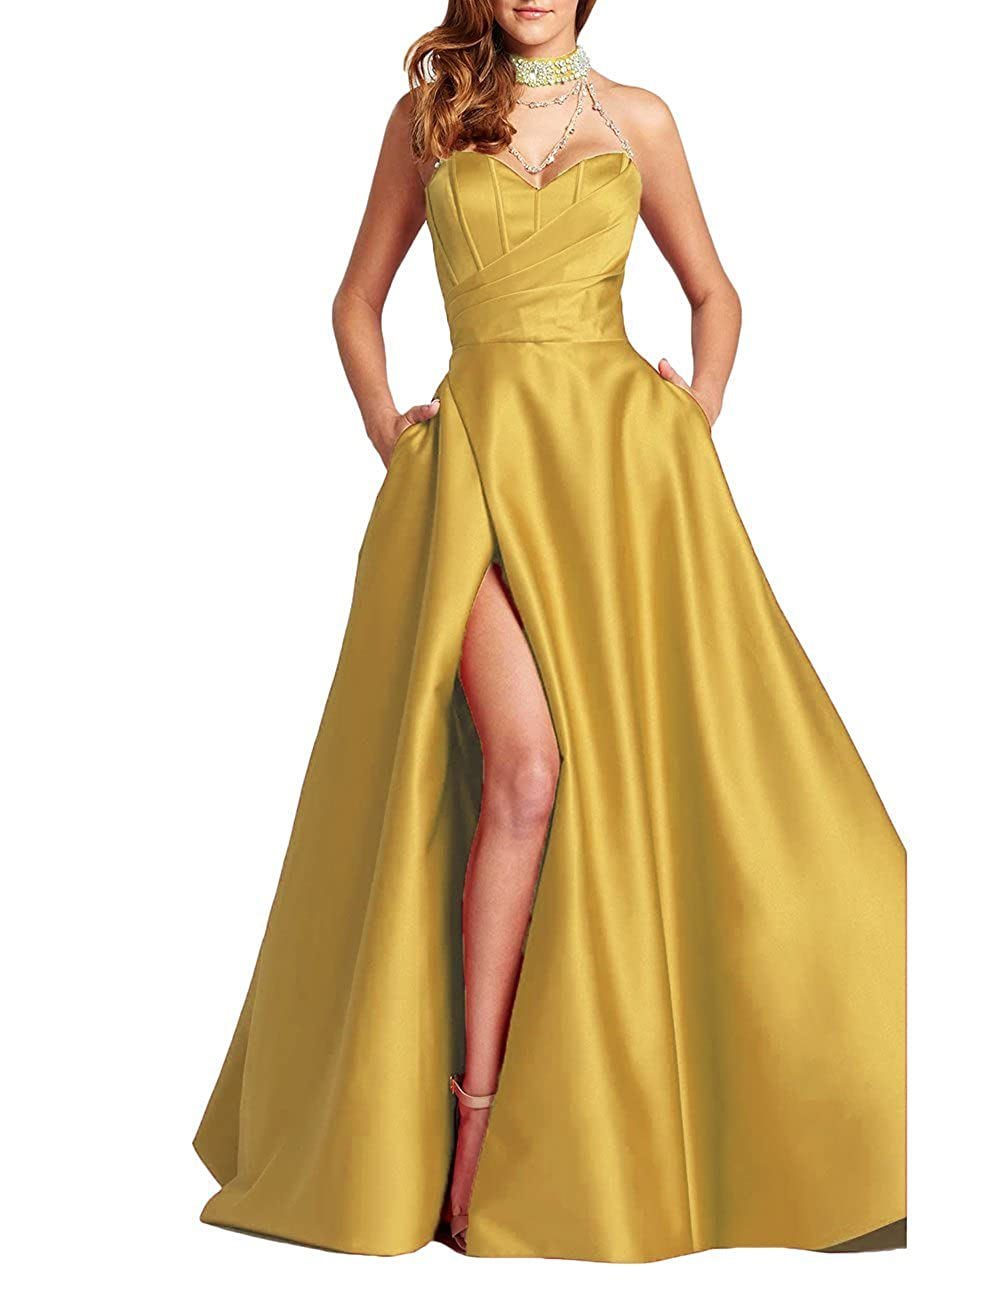 Agold alilith.Z Sexy Sweetheart Side Slit Beaded Prom Dresses Long Formal Evening Dresses Party Gowns for Women with Pockets